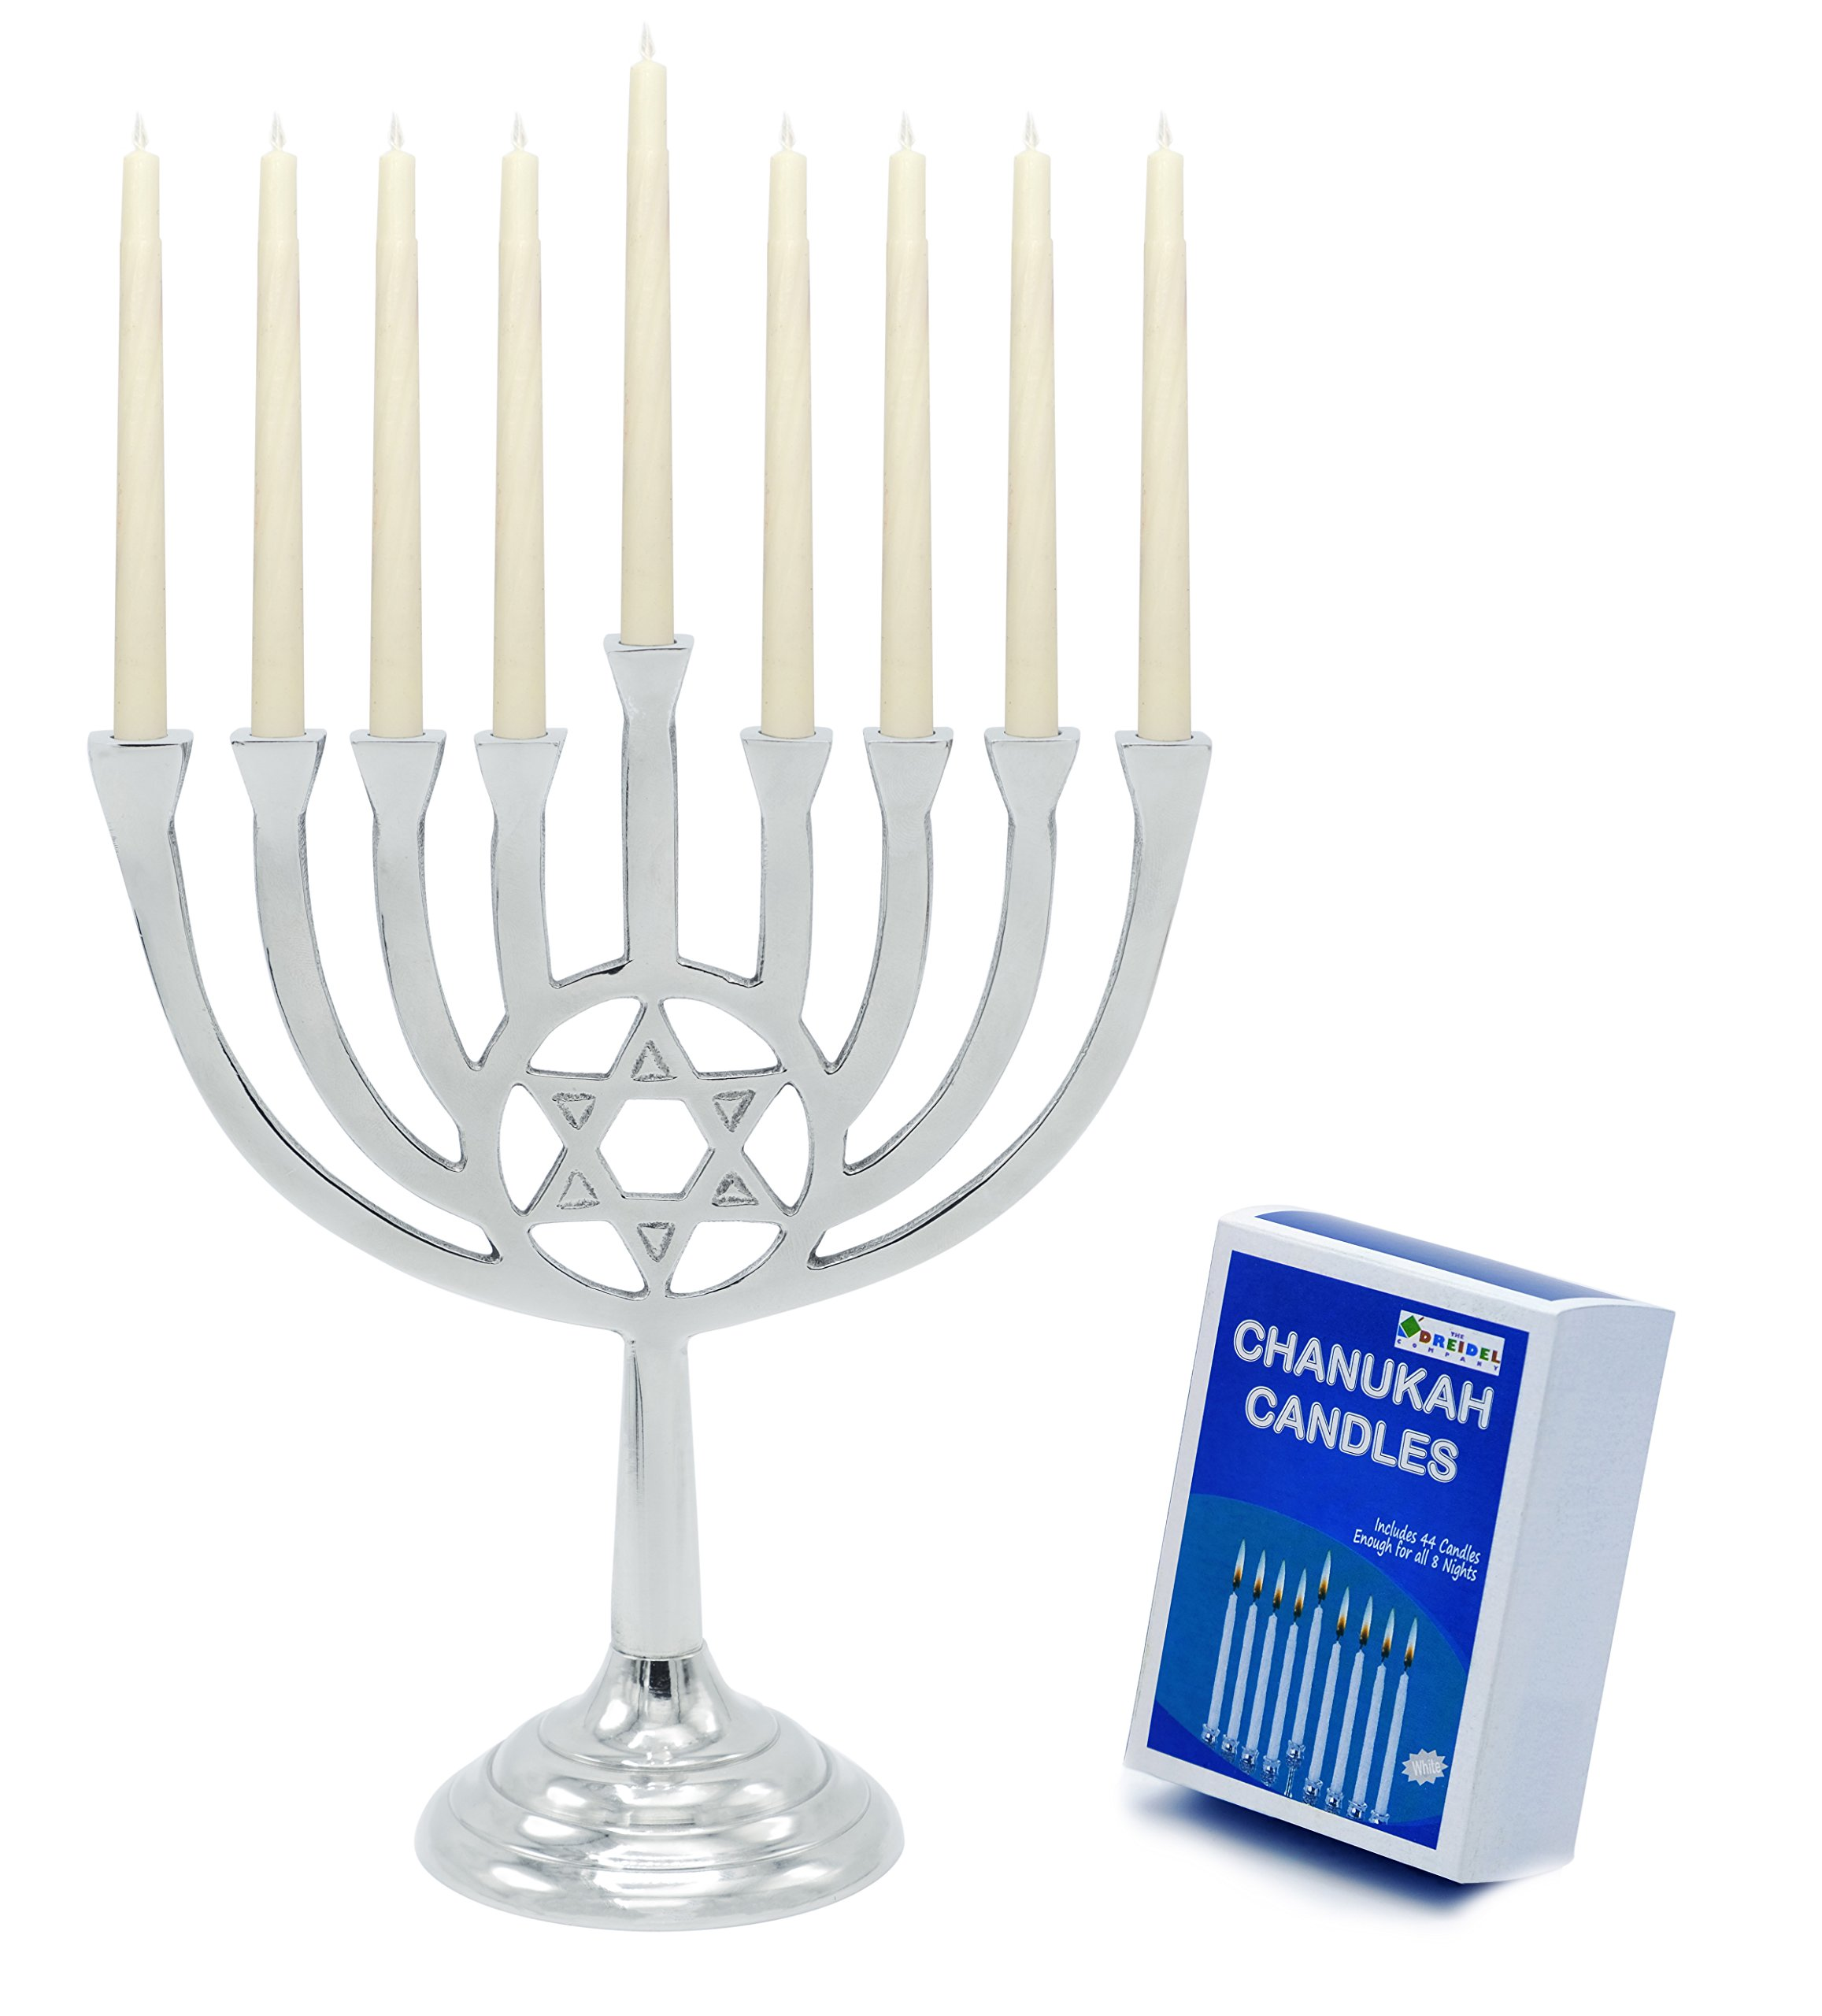 Menorah With Traditional Star of David - Polished Aluminum Includes Box Of 44 Elegant White Candles